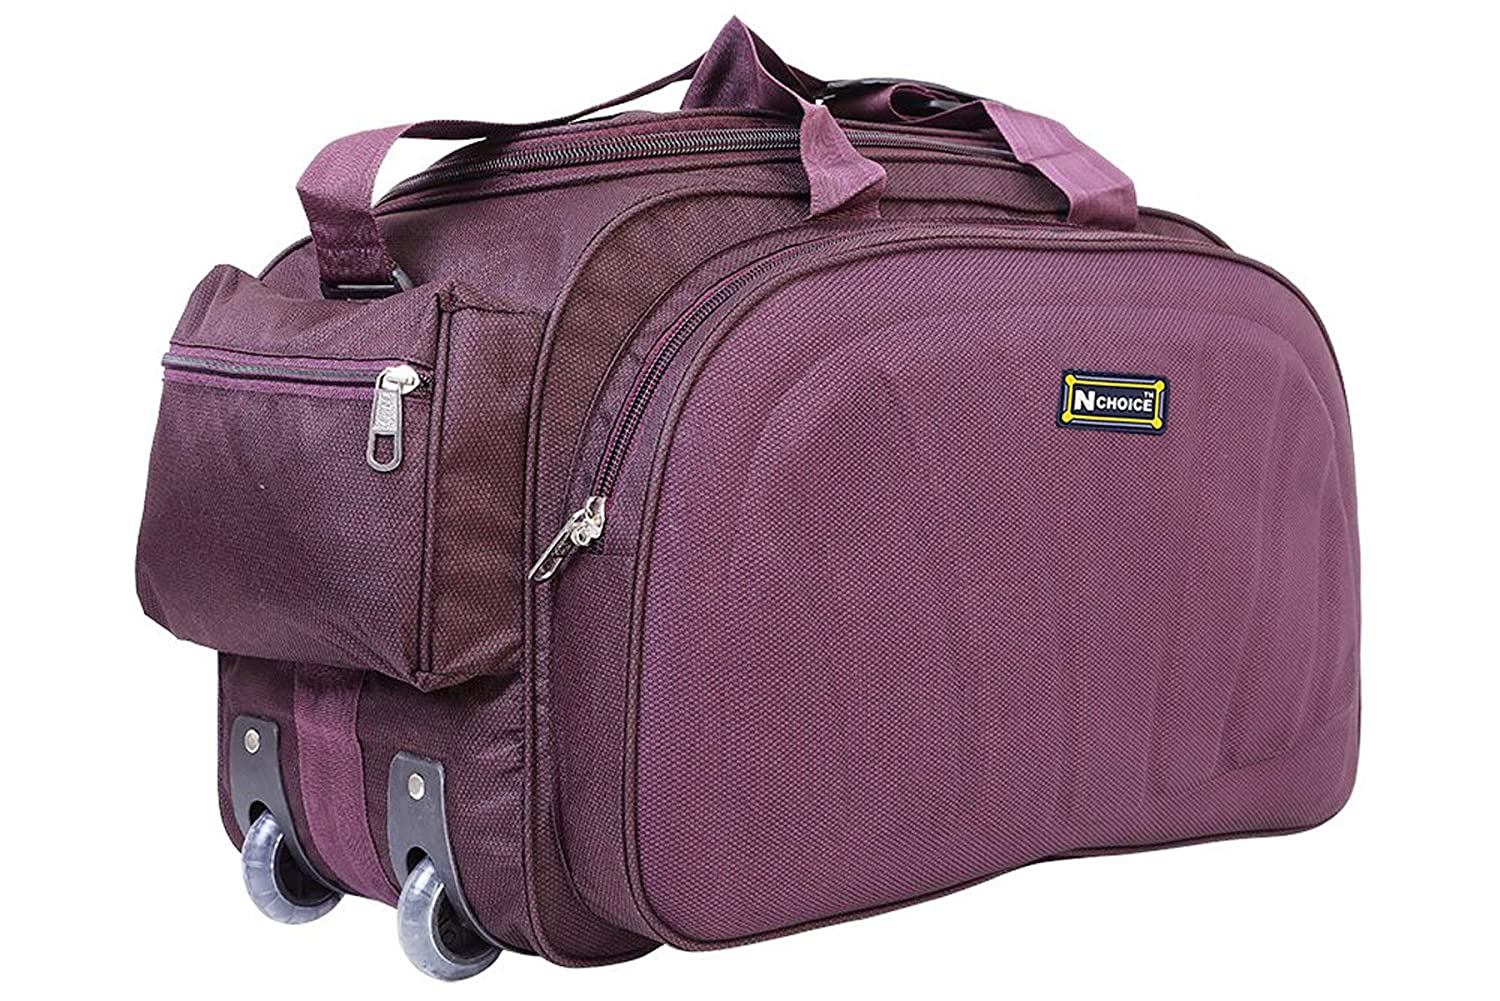 N Choice Unisex Polyester Purple 40 L Waterproof Lightweight Duffle Bag with 2 Wheels